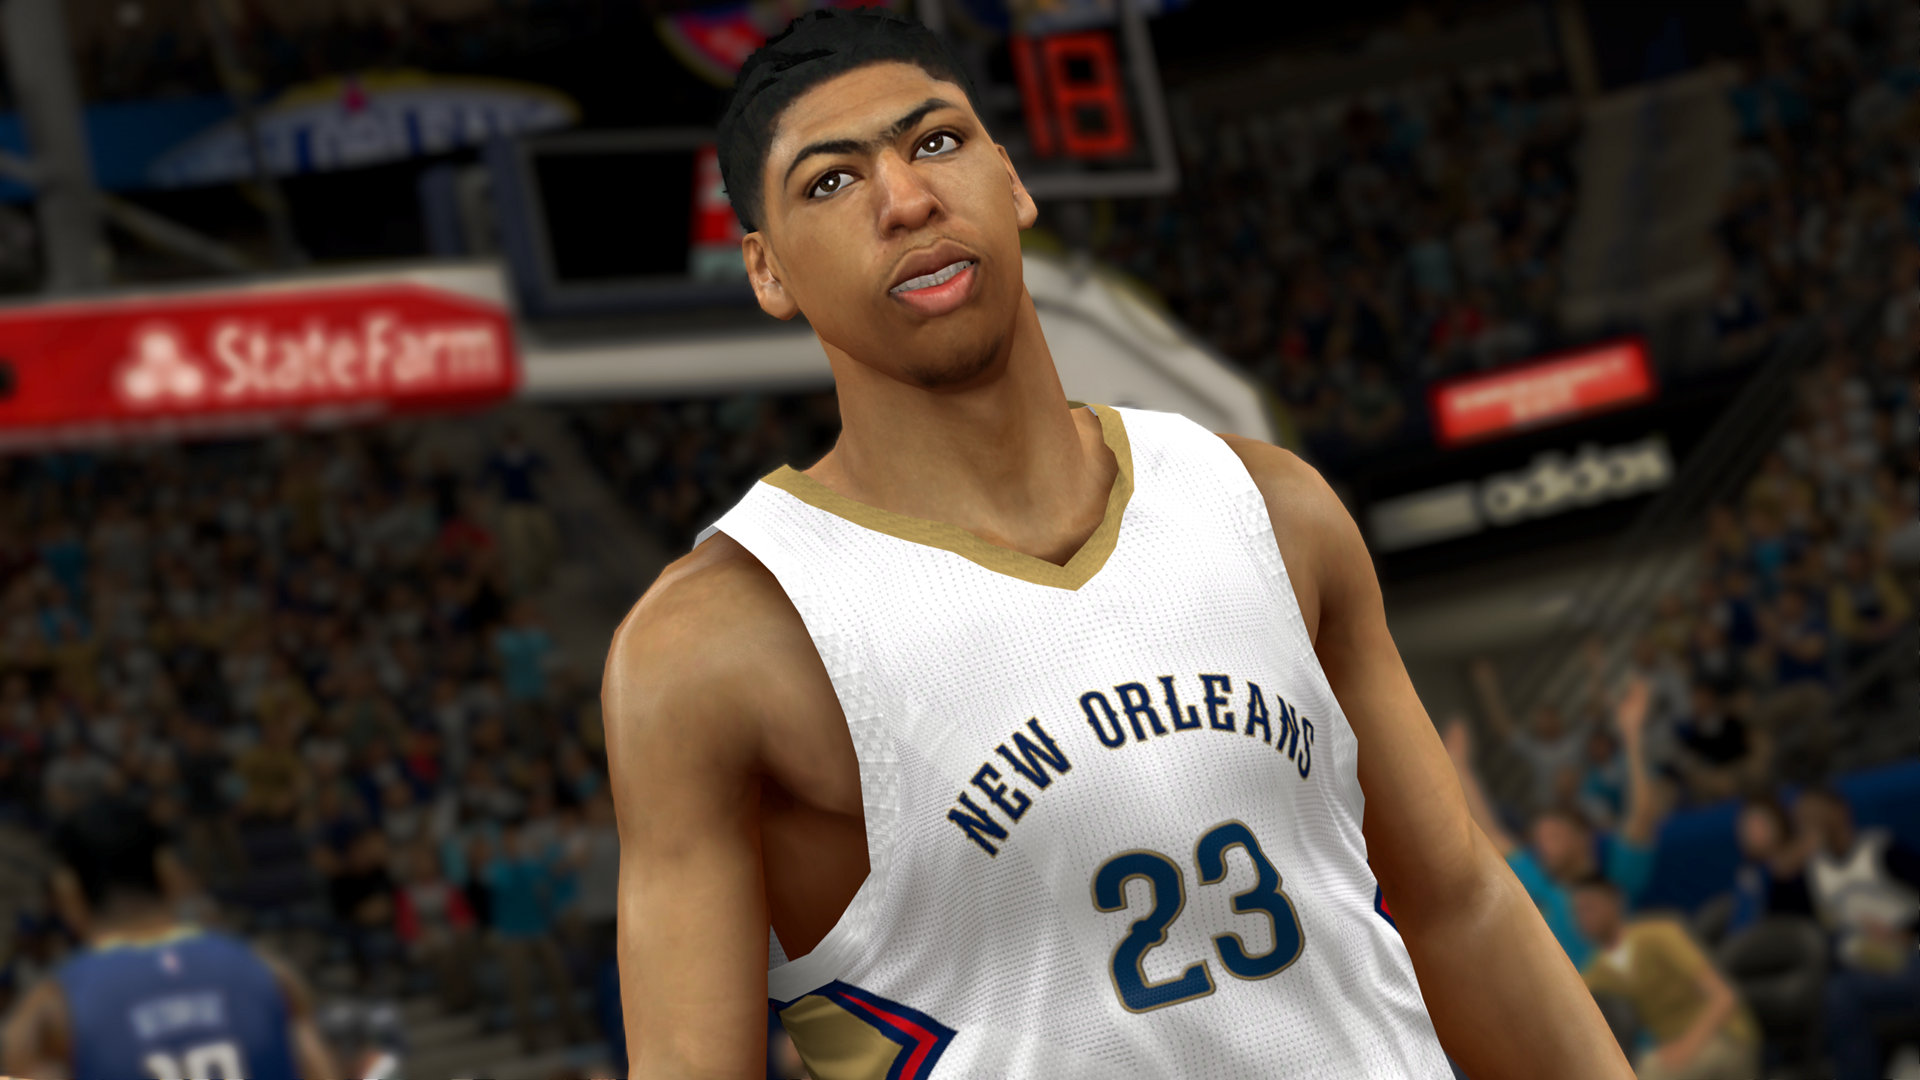 nba 2k14 download pc free full version kickass